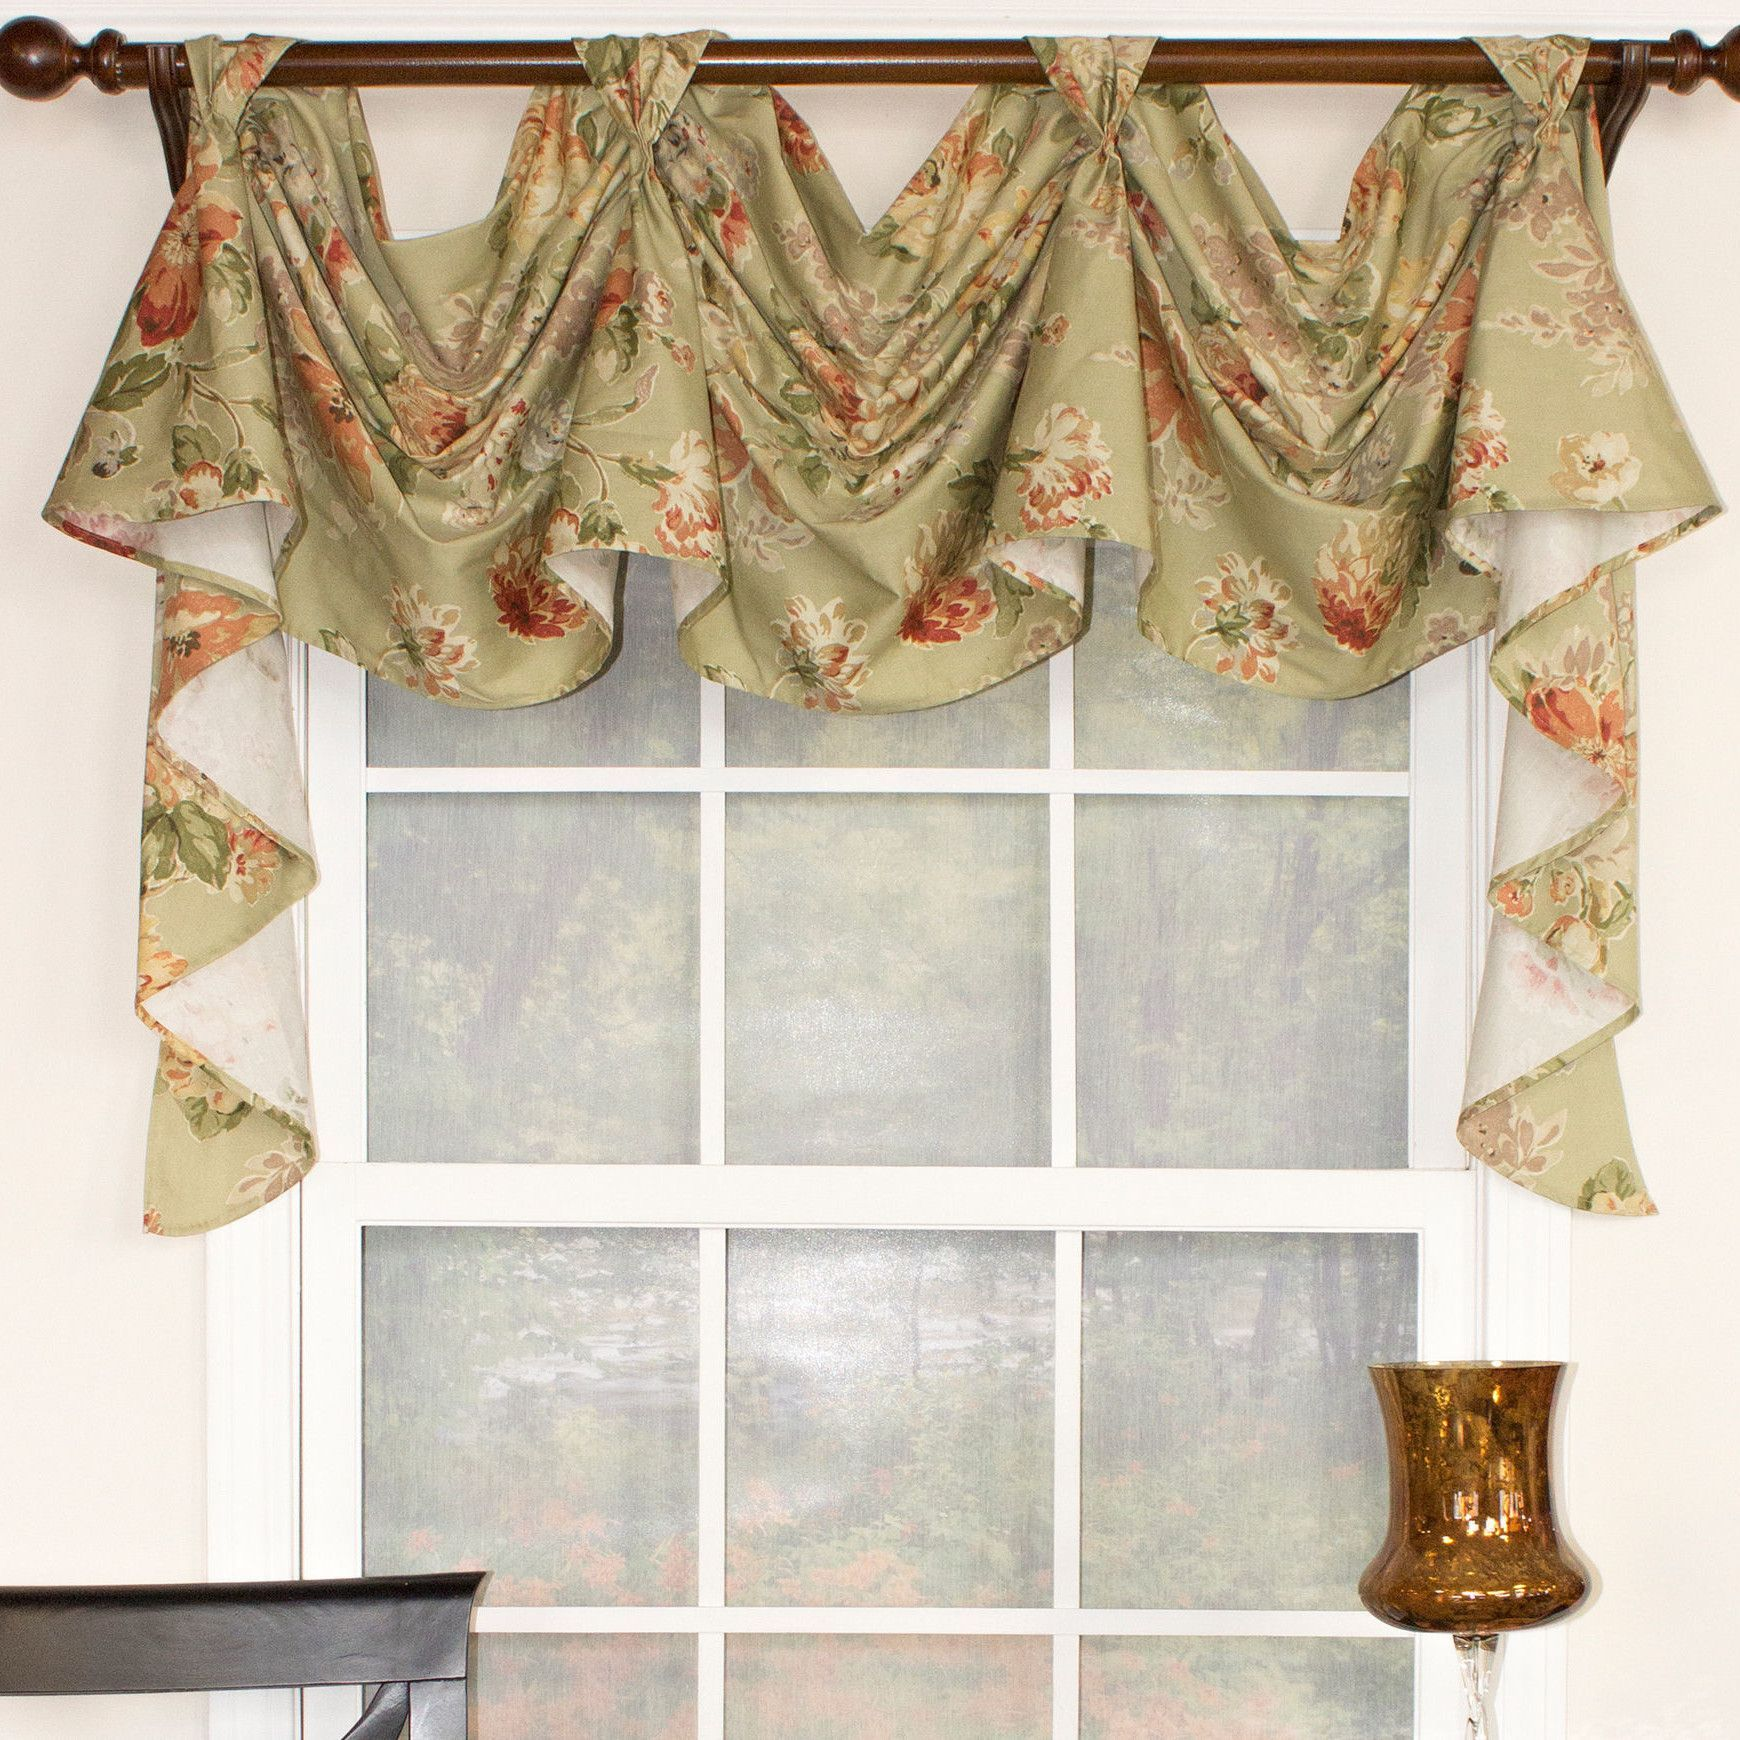 elegance ascot by stylemaster inch line quotations find white voile valance get on deals guides at sheer cheap shopping